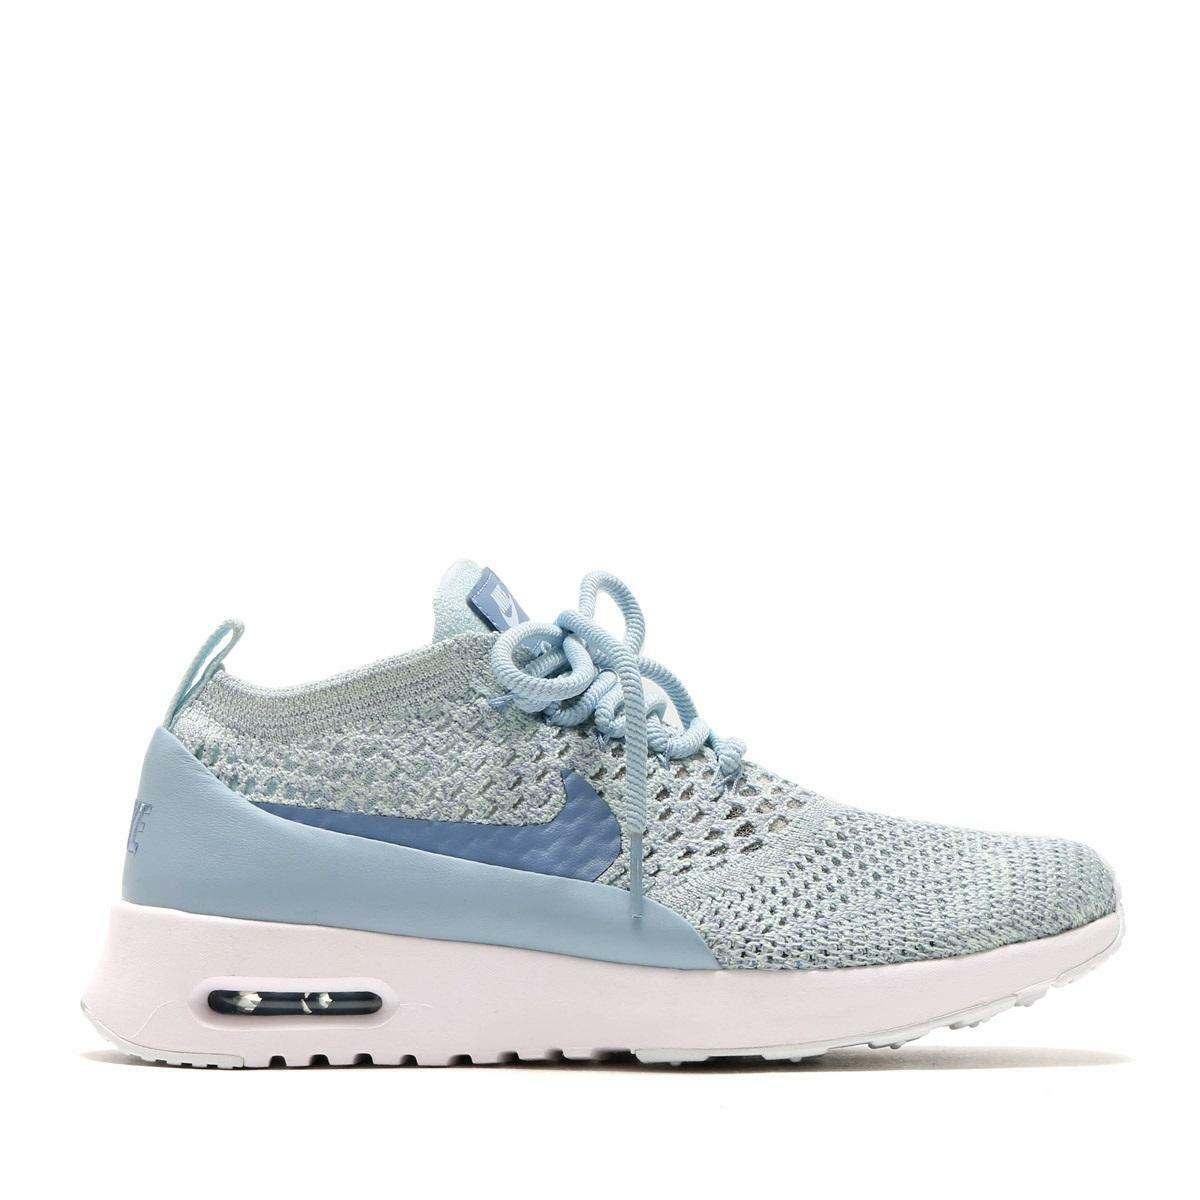 Womens NIKE AIR MAX THEA ULTRA FK Armory bluee Trainers 881175 401